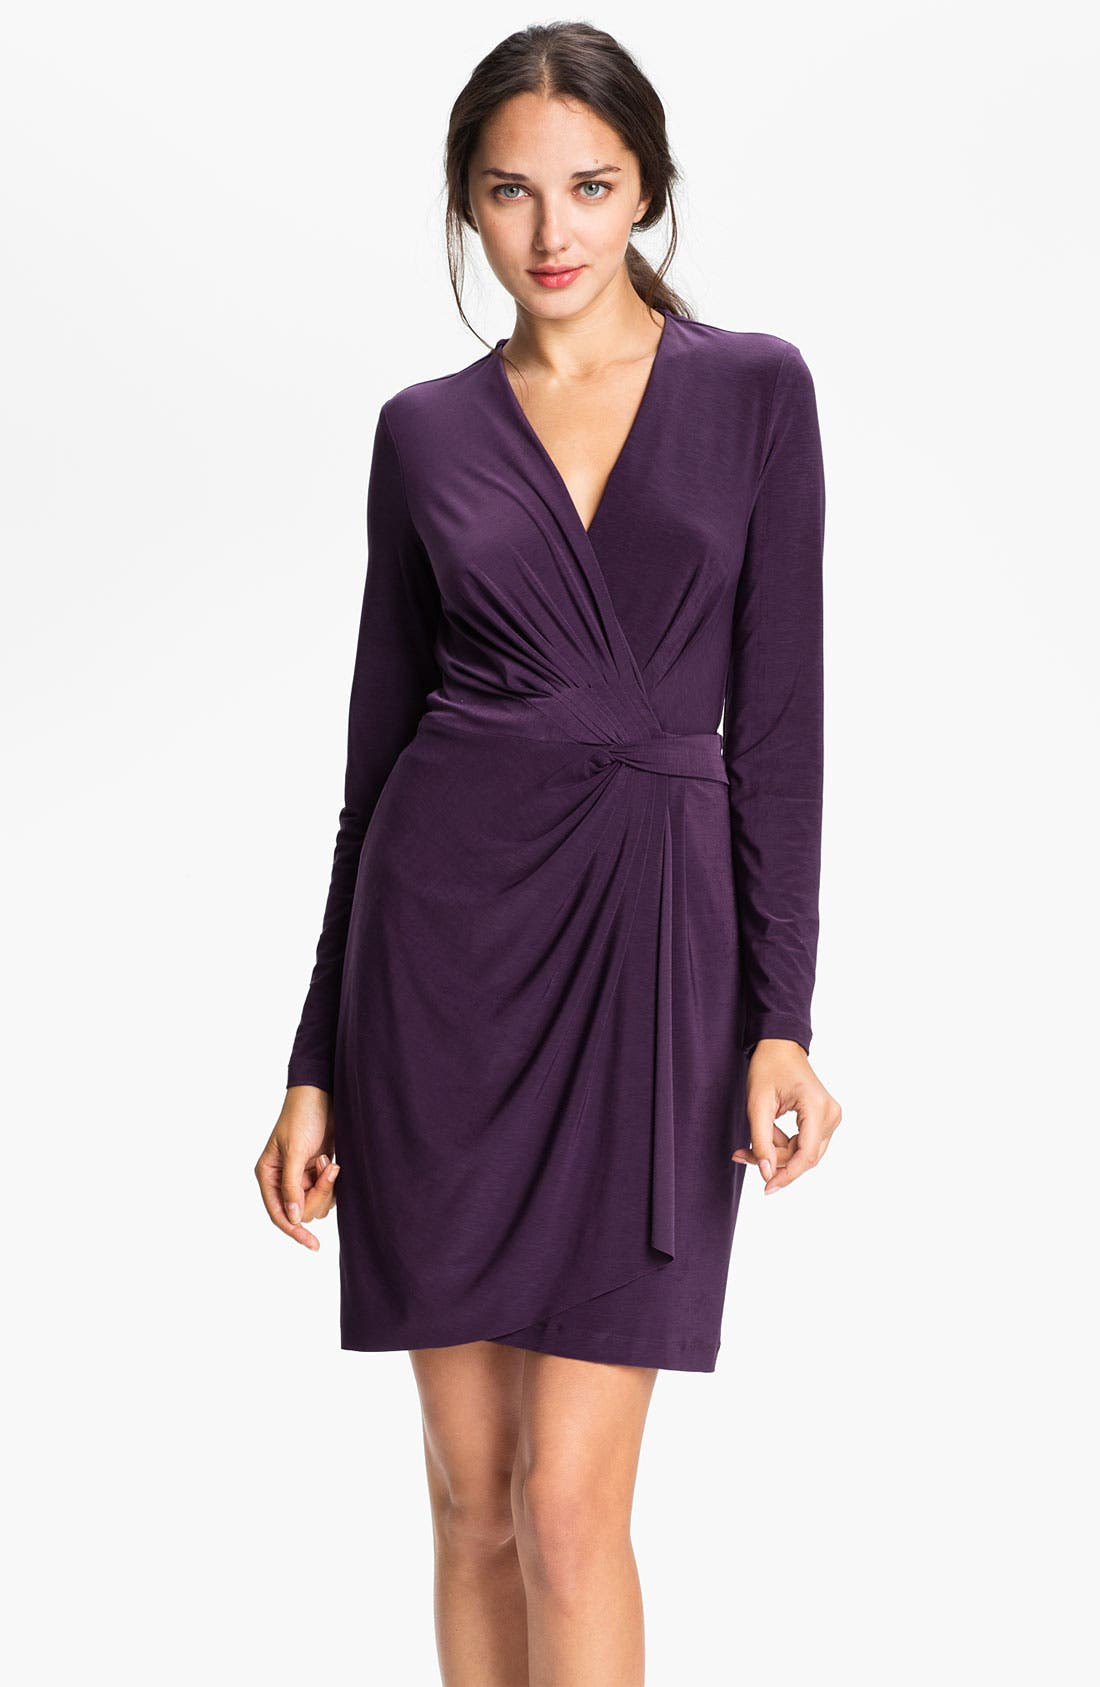 Alternate Image 1 Selected - Alex & Ava Draped Faux Wrap Dress